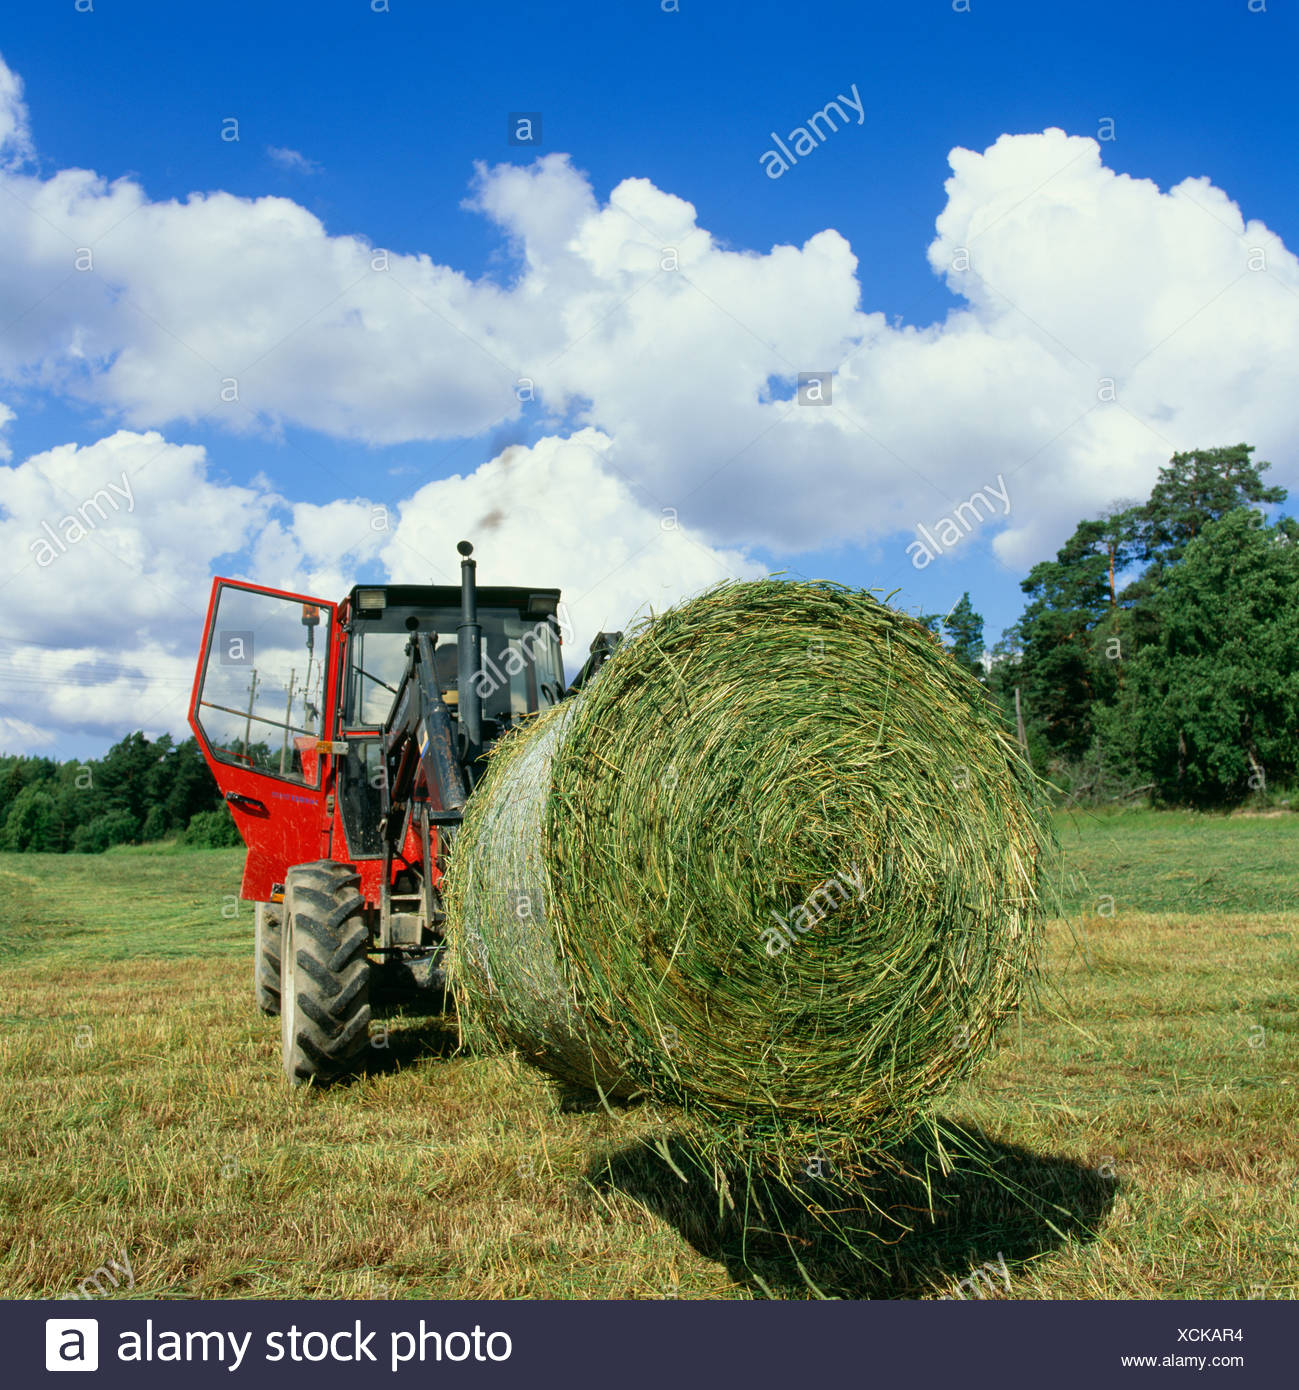 A tractor at a farm, Sweden. - Stock Image